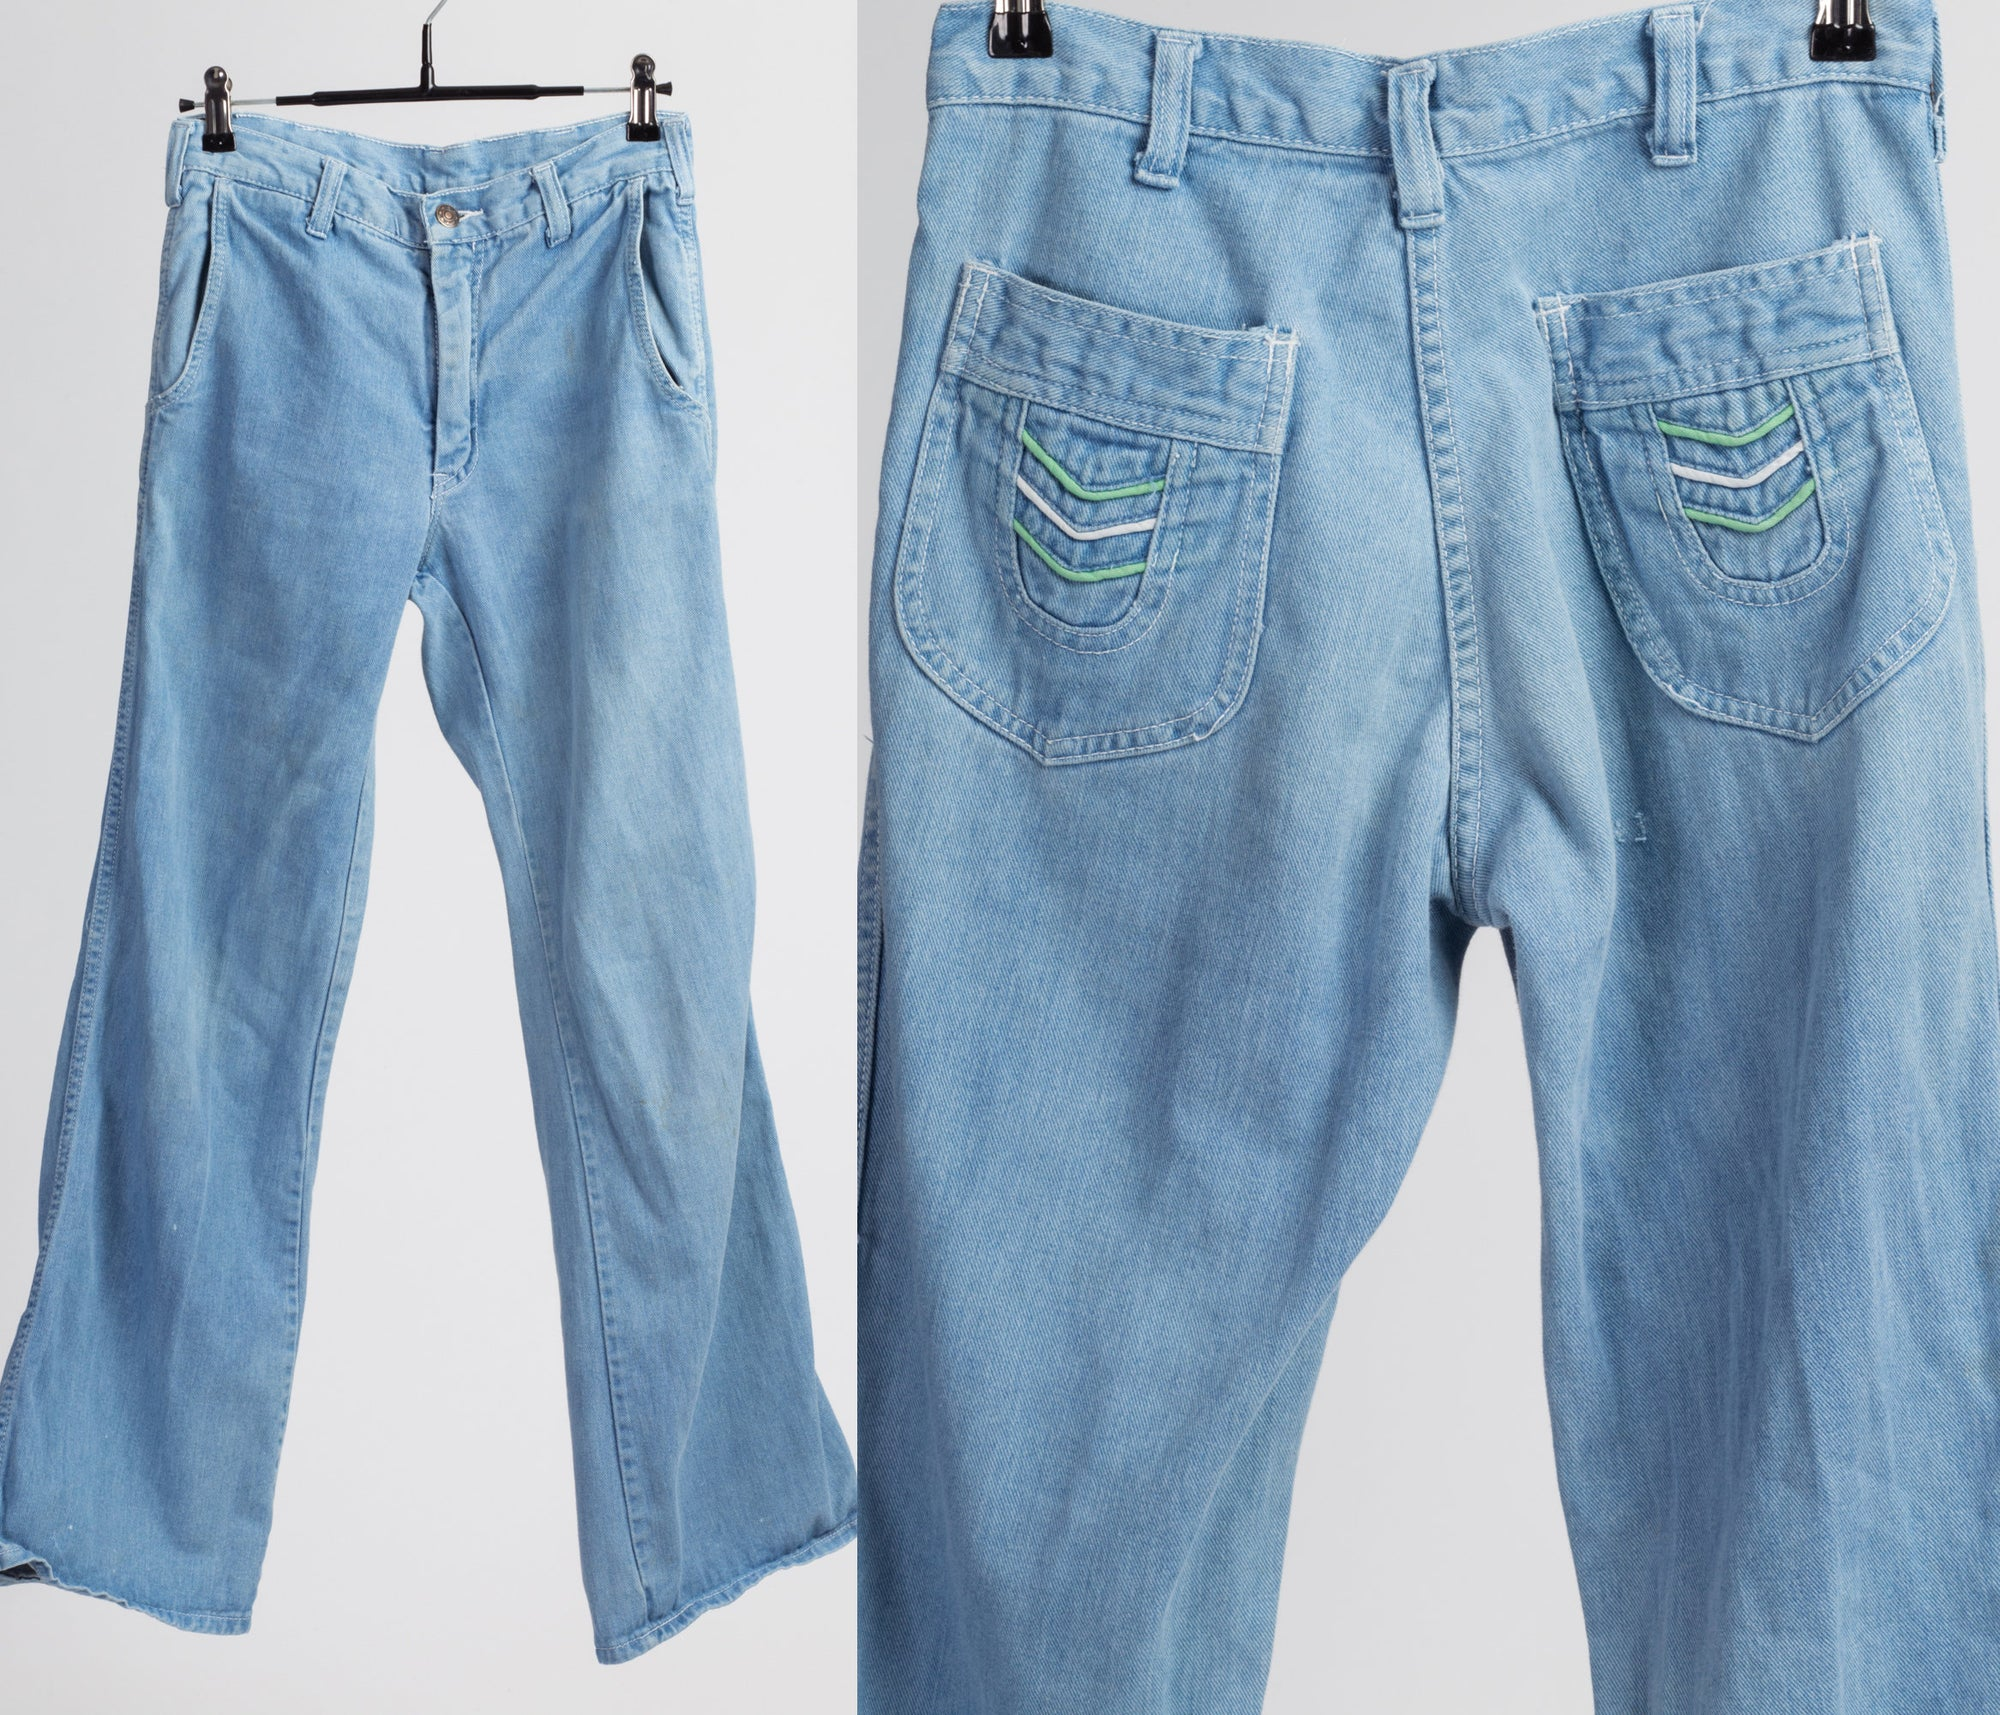 Retro 70s Mid Rise Jeans - Extra Small